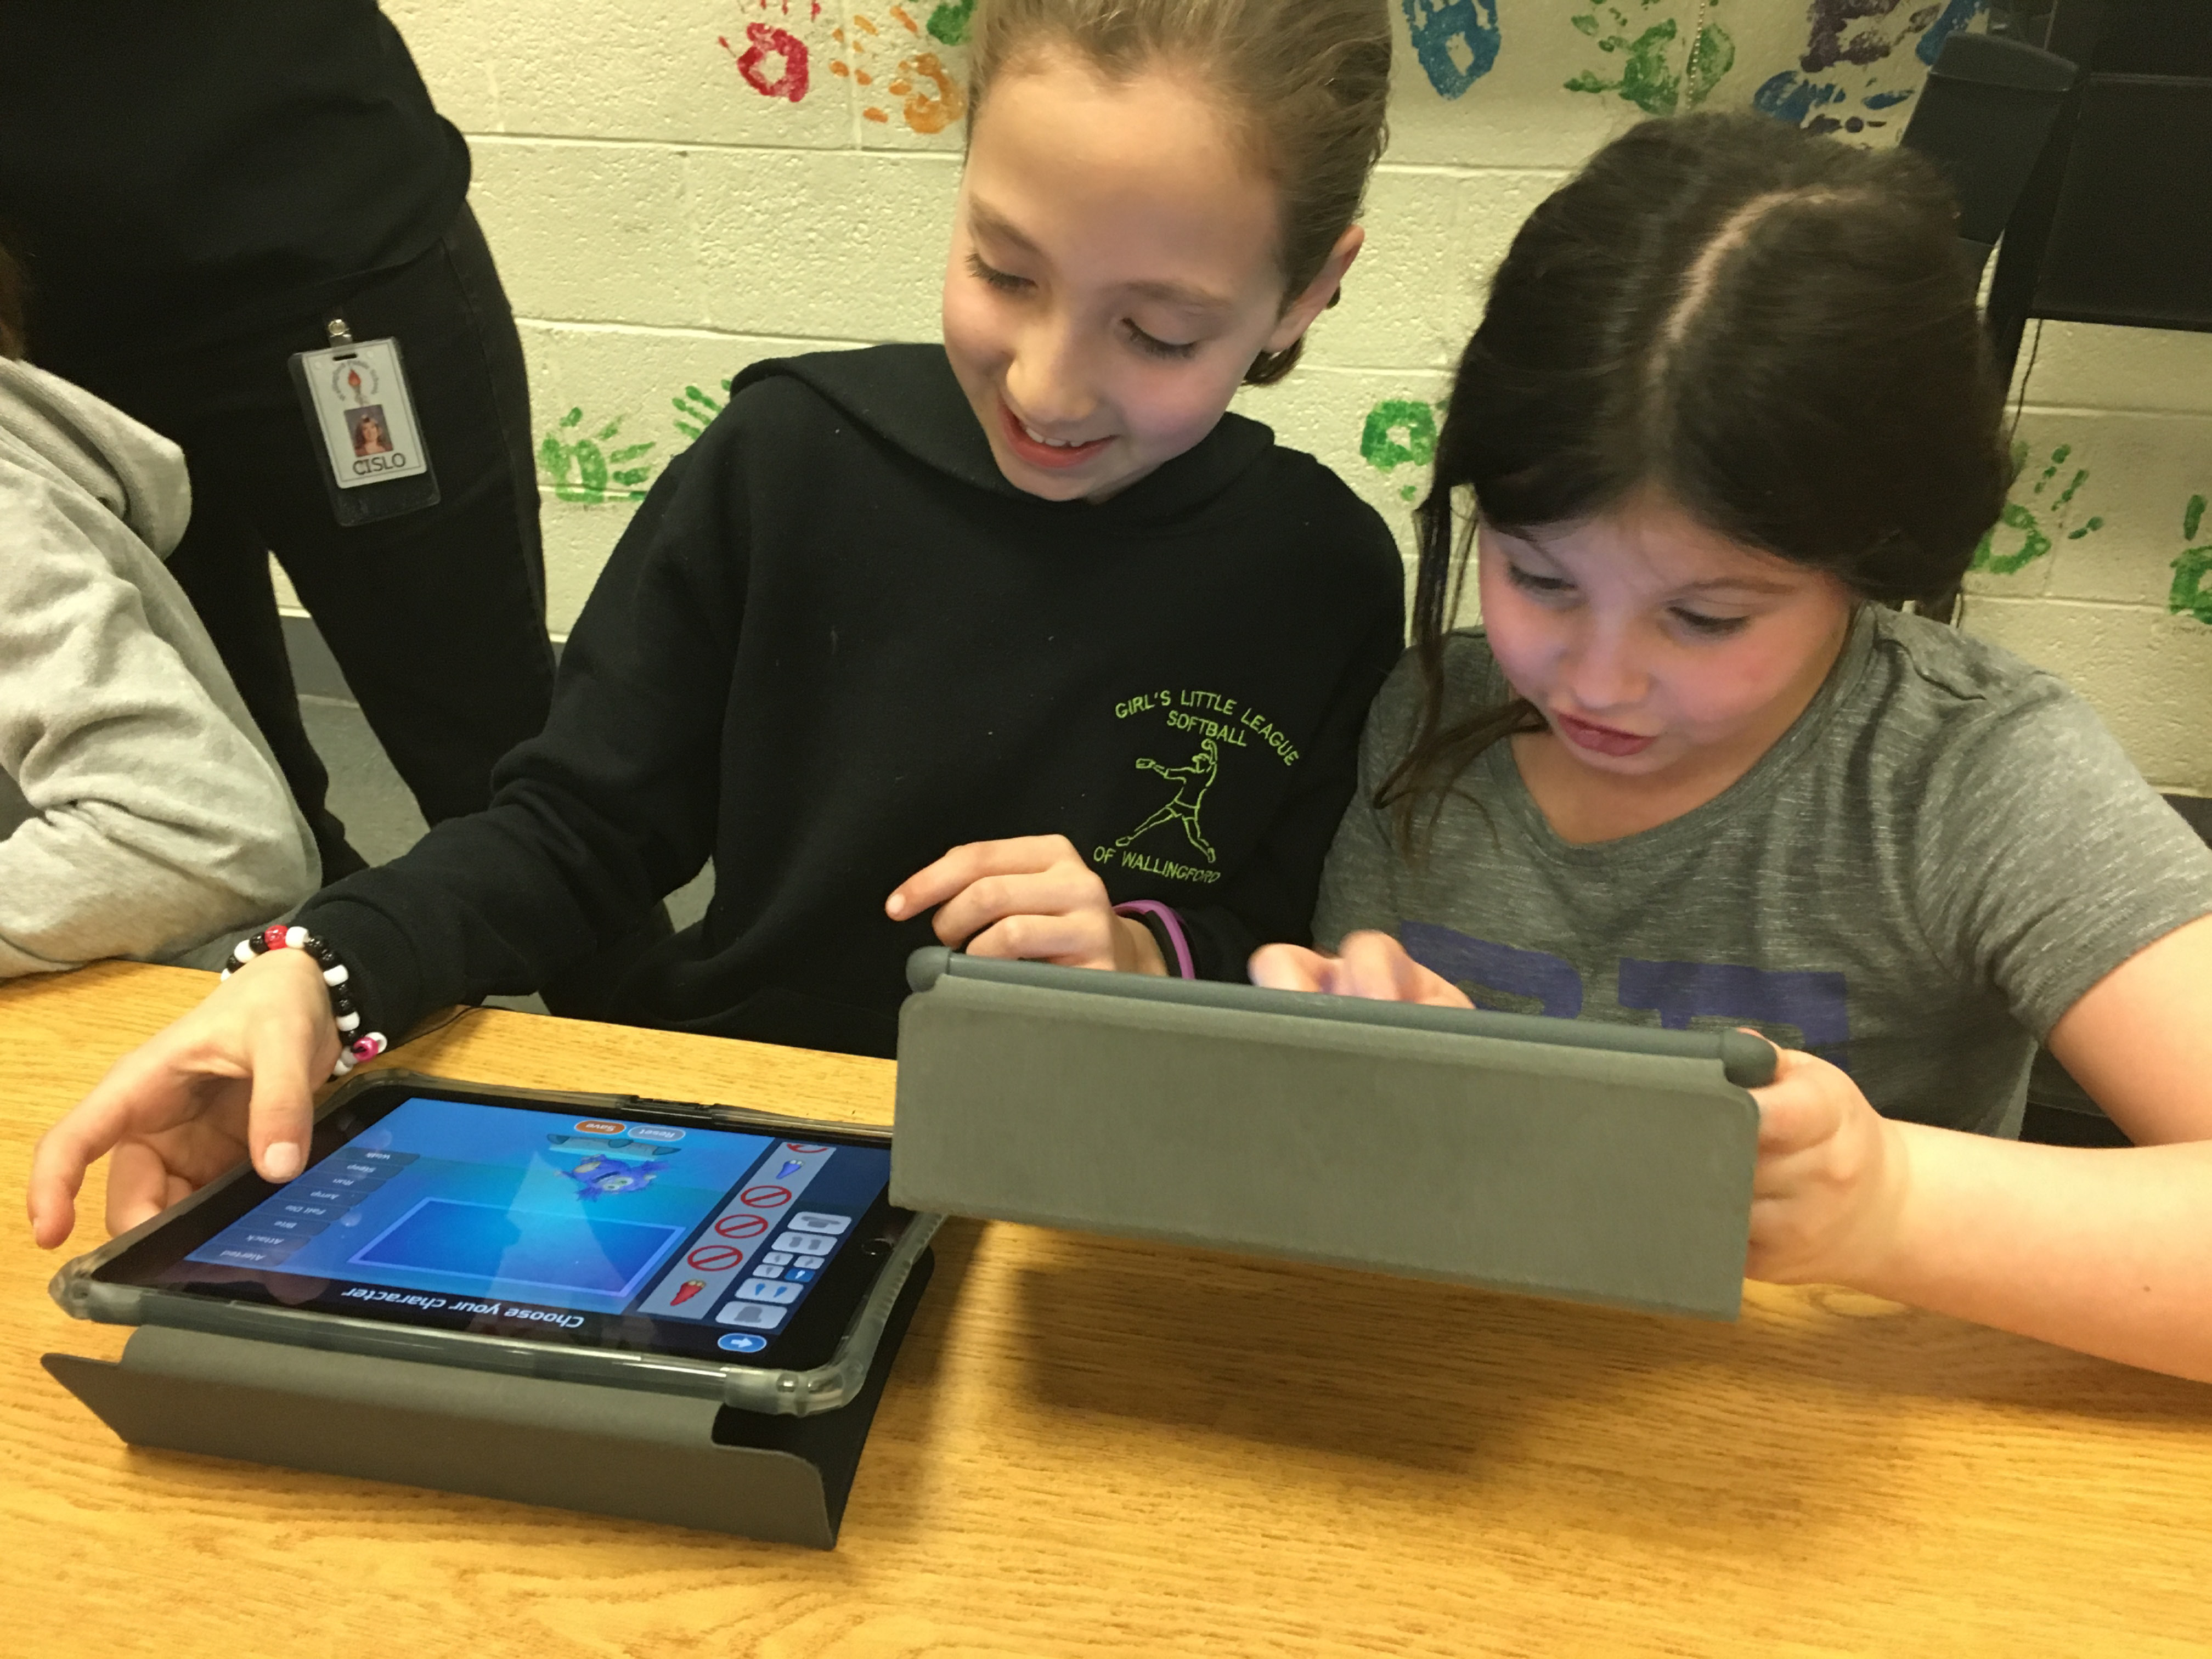 Pond Hill Elementary School third-graders Isabella Galushko, left, and Katherine Clark play Candy Quest, a computer programming game, at a girls coding night in Wallingford on Thursday, March 30, 2017. | Lauren Takores, Record-Journal